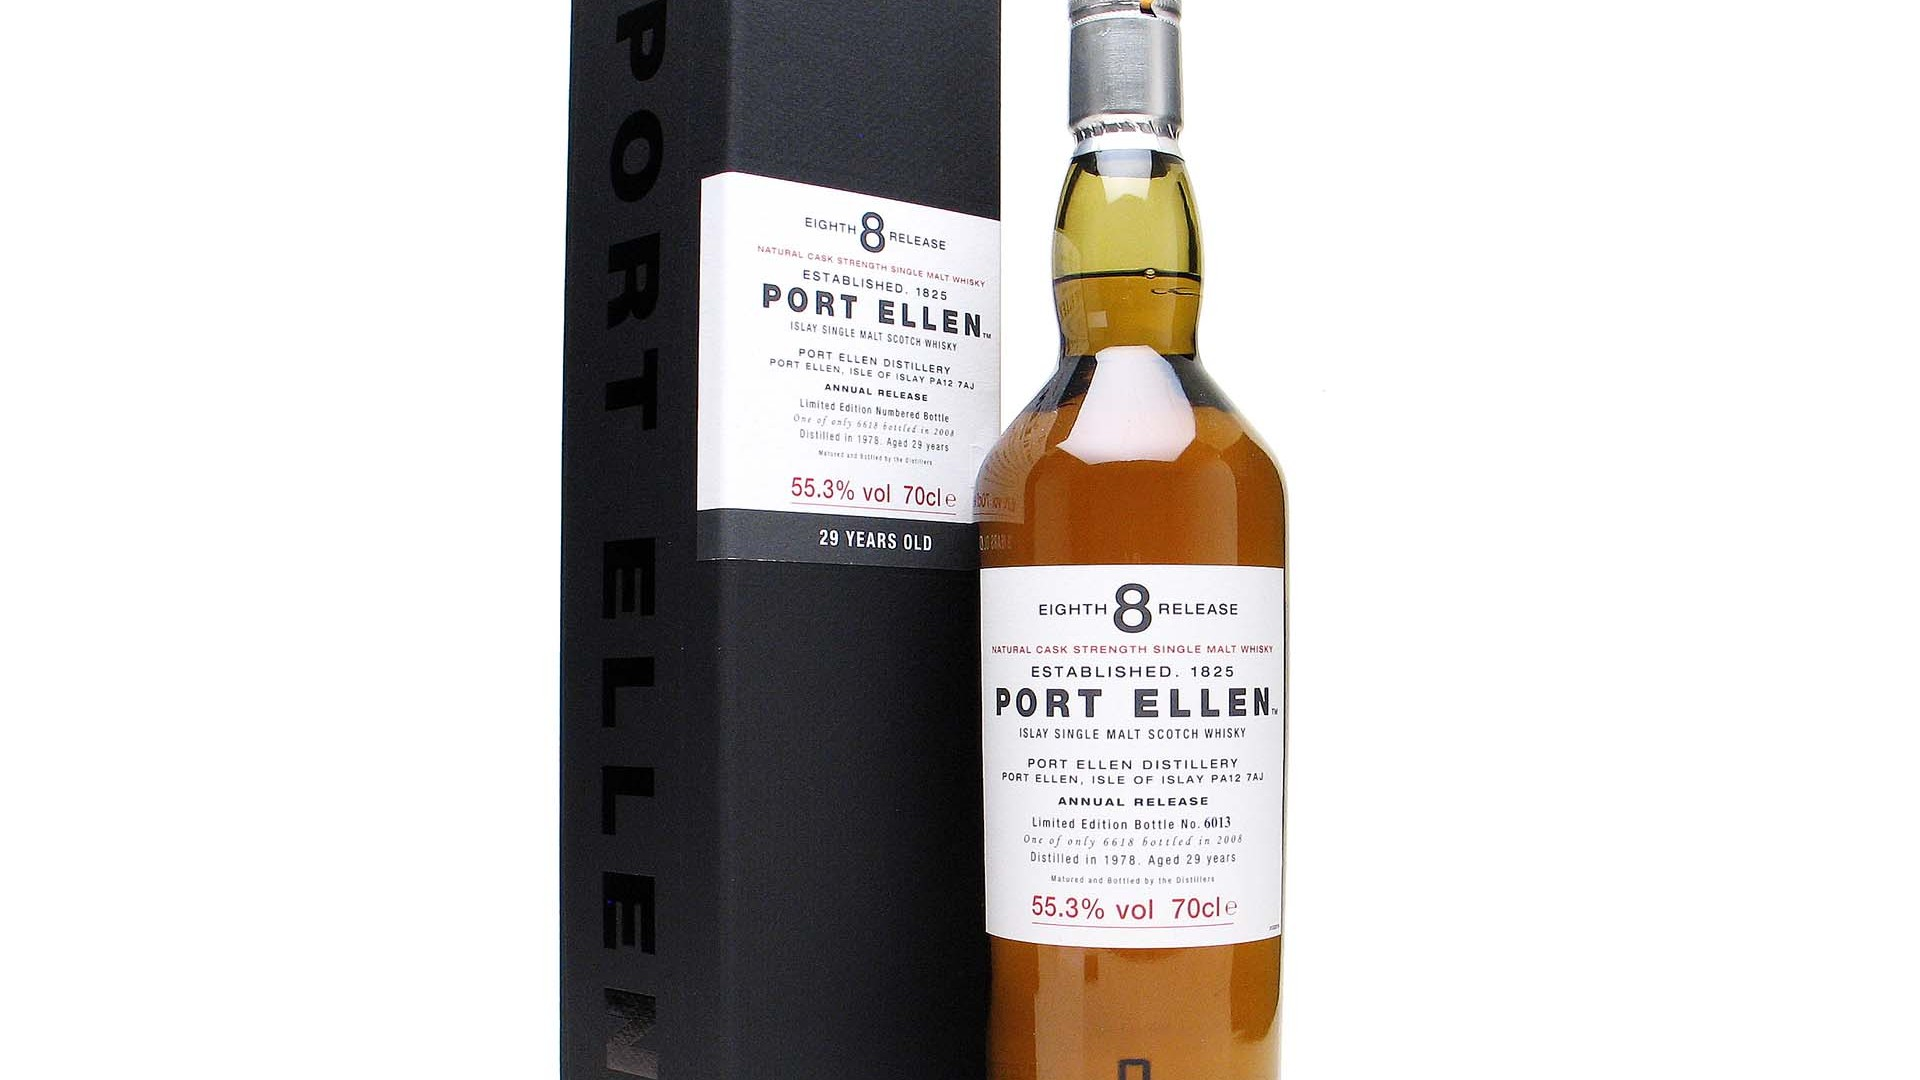 Port Ellen 1978, 29 year old 8th Release (2008), Islay Single Malt Scotch Whisky